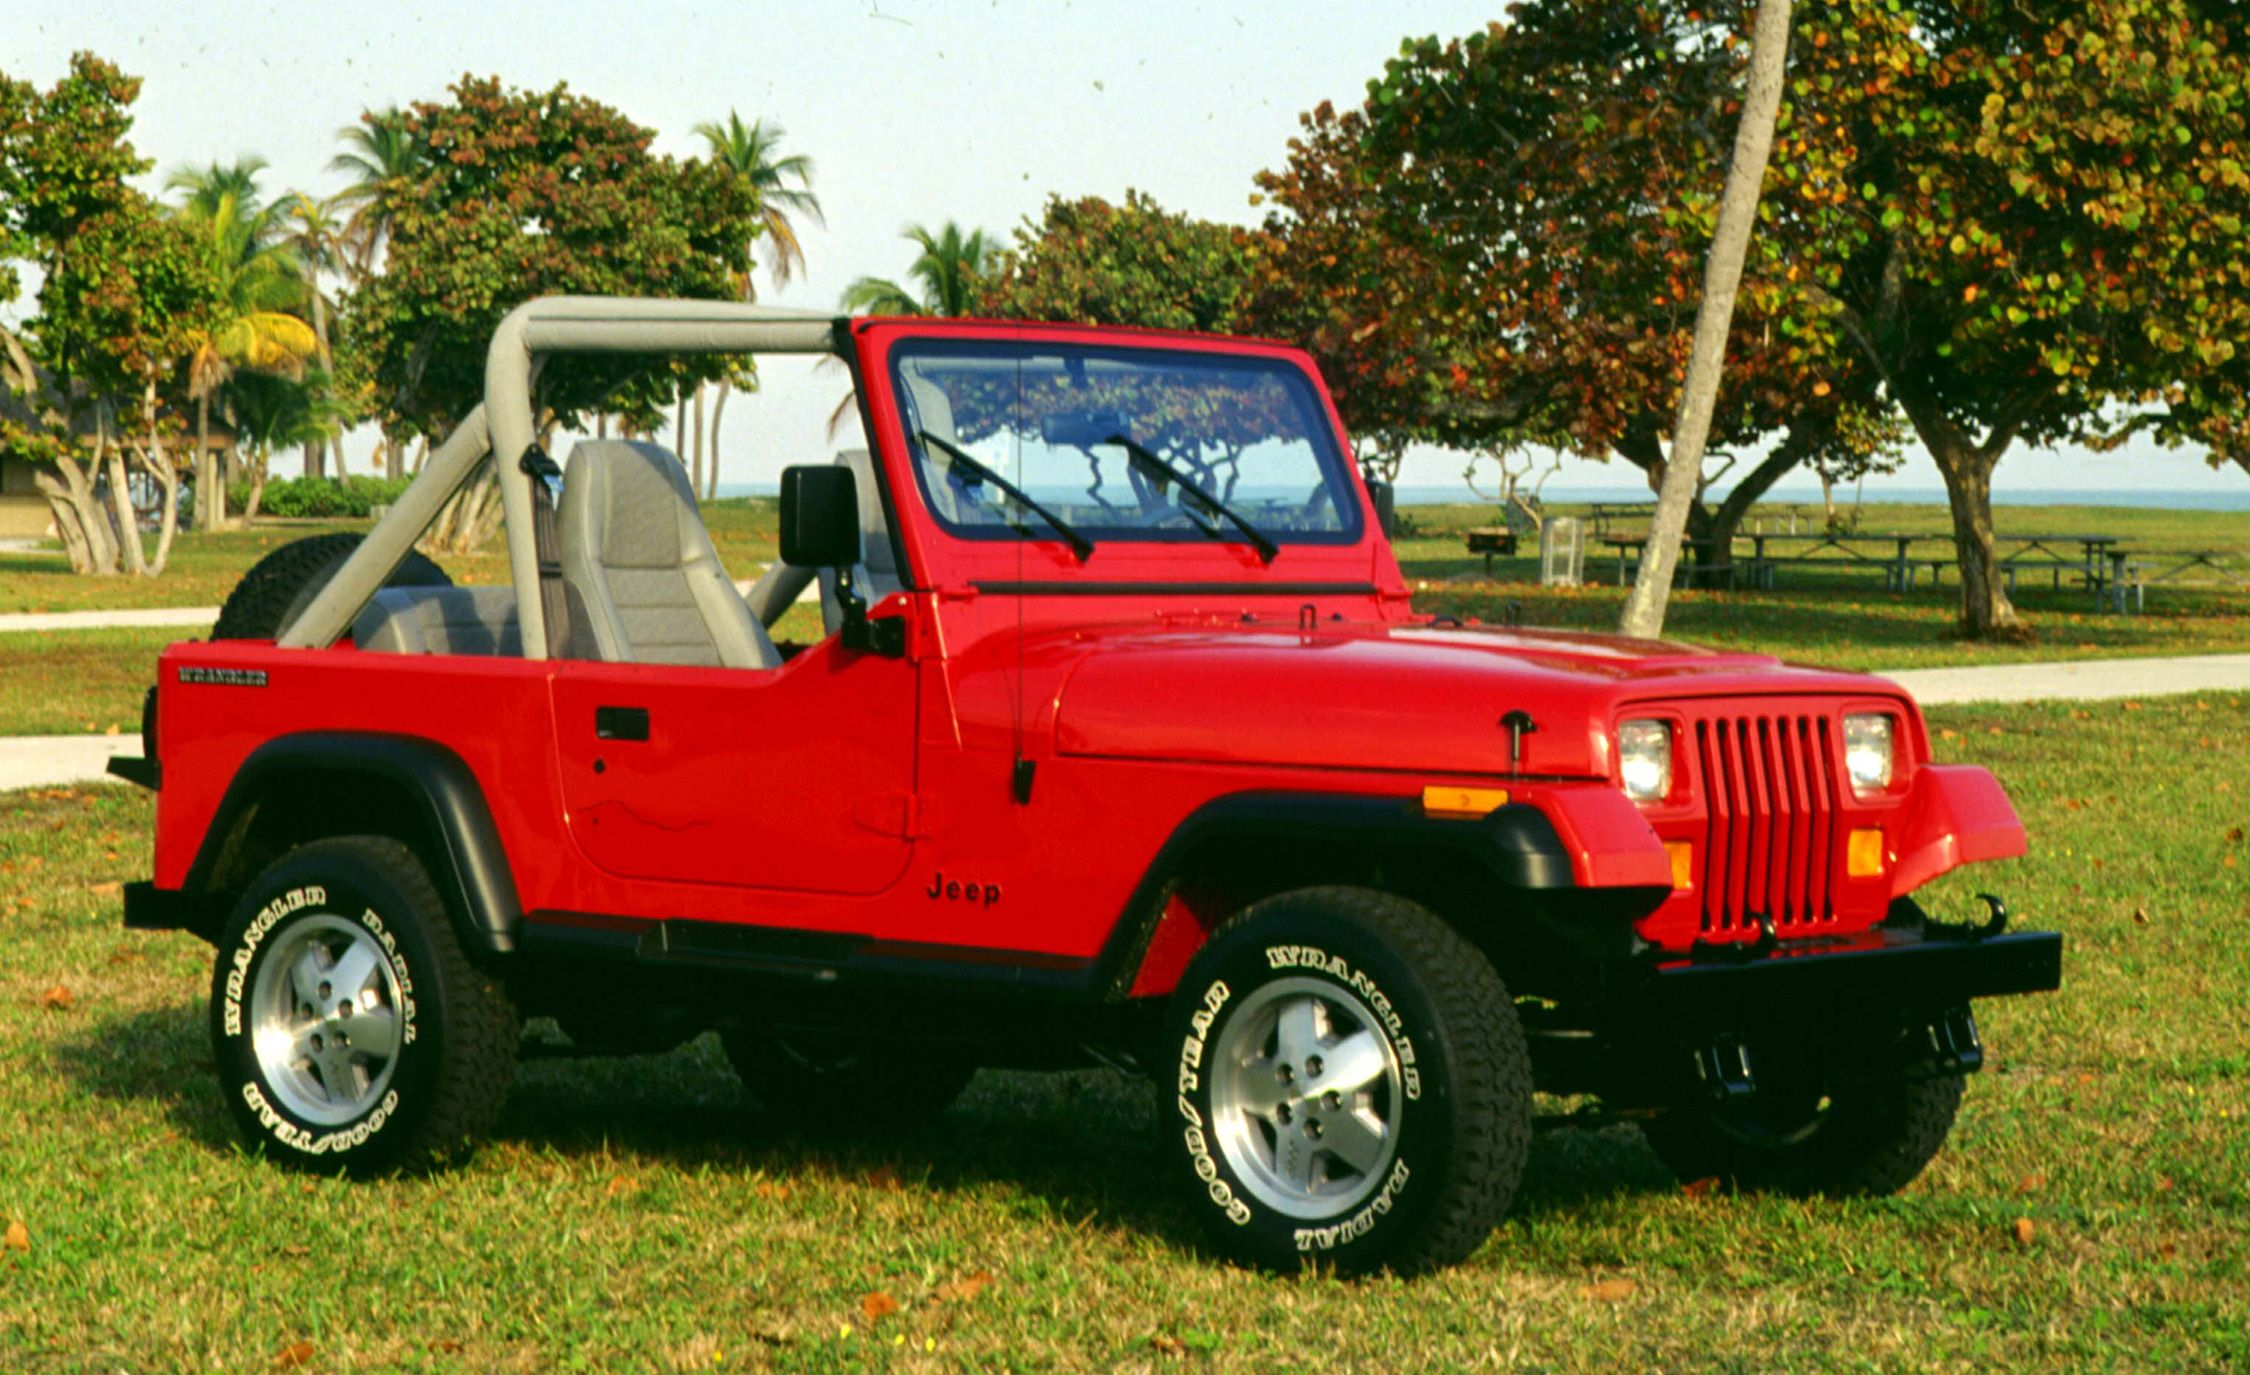 The plete Visual History of the Jeep Wrangler from 1986 to